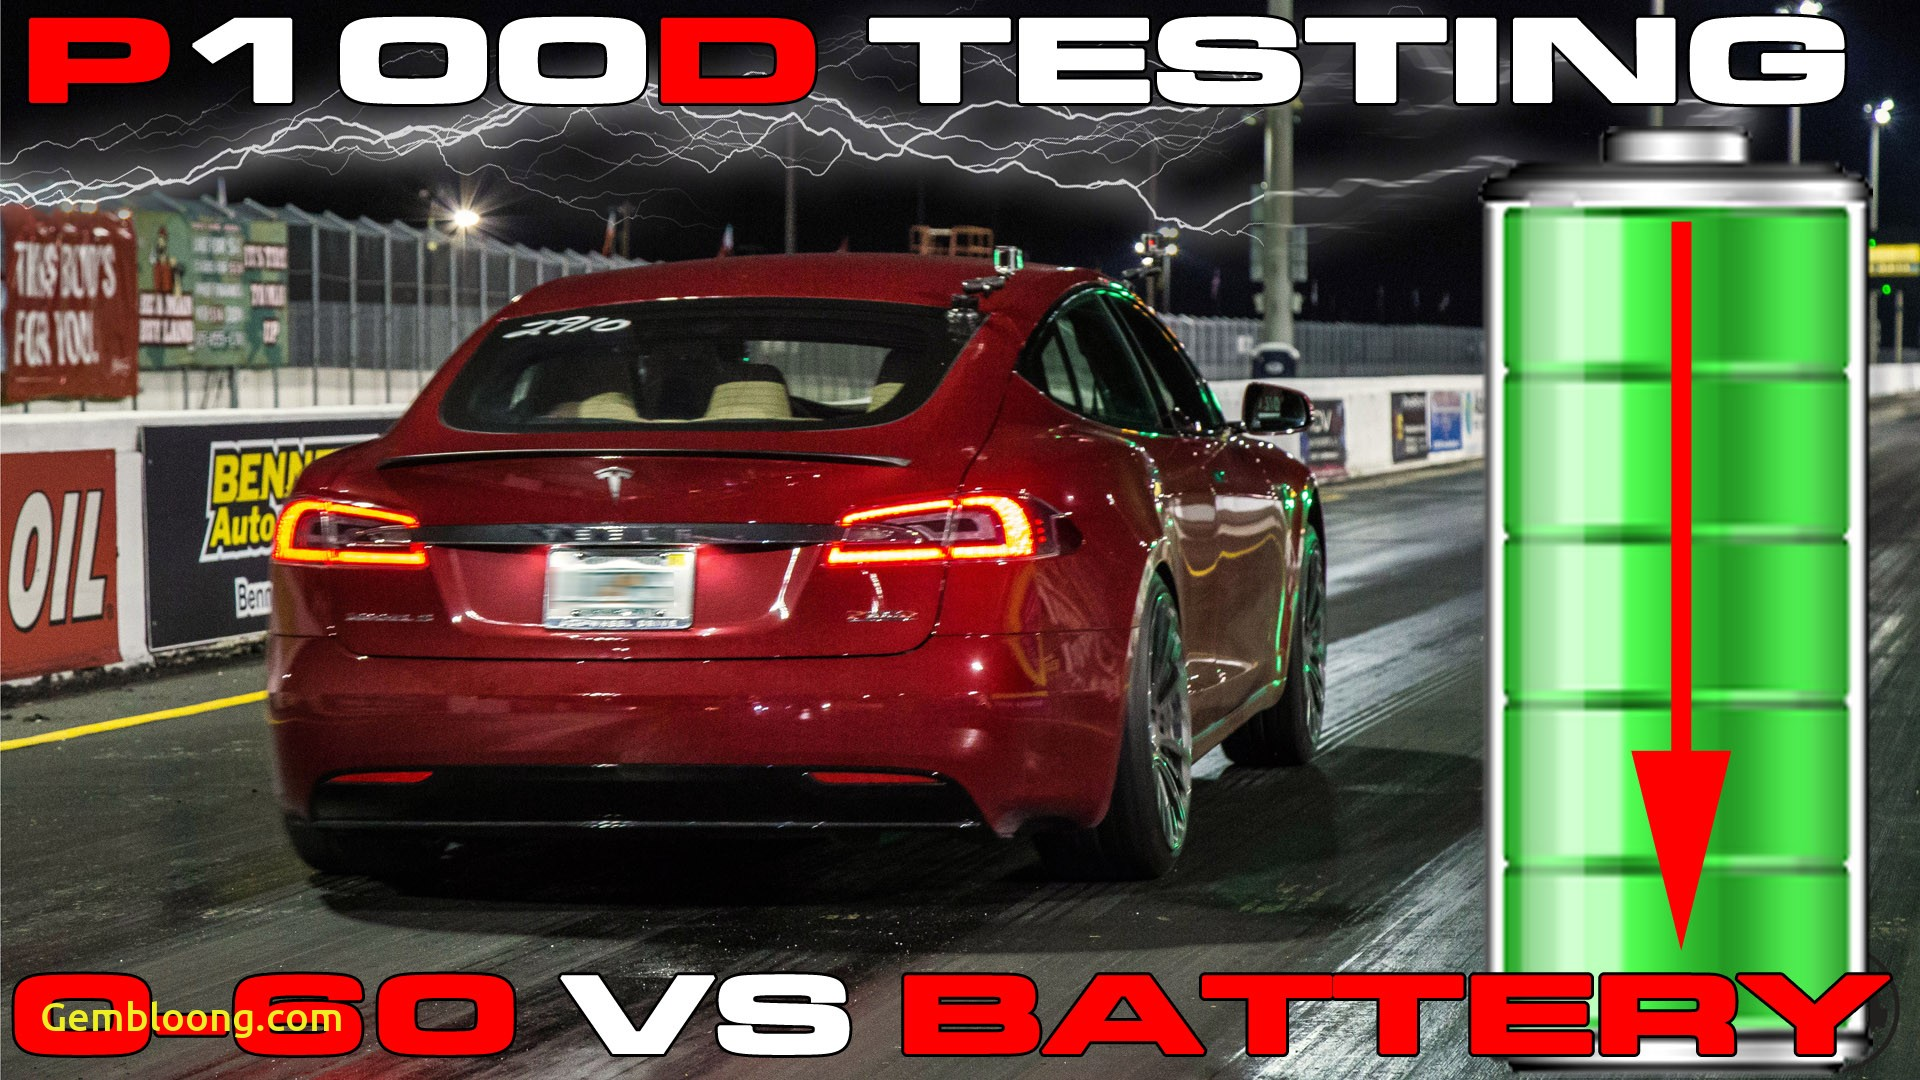 Tesla 0 to 60 Model S New Tesla P100d Ludicrous Testing 0 60 Mph Vs Battery State Of